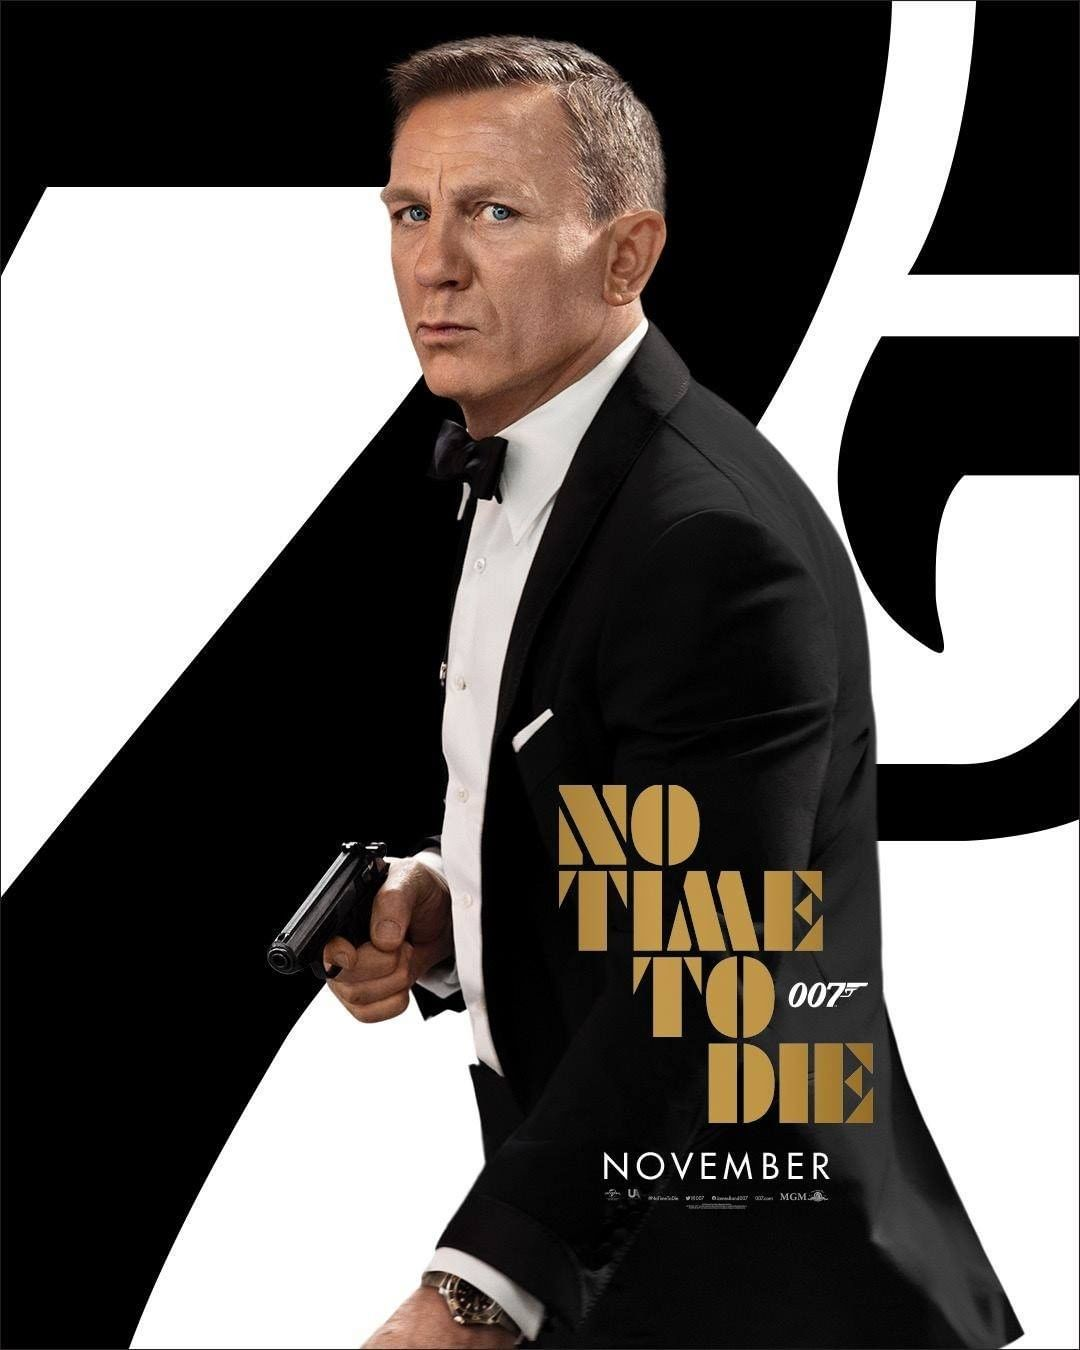 Trailer Thursday: 'No Time to Die' set for November cinema release